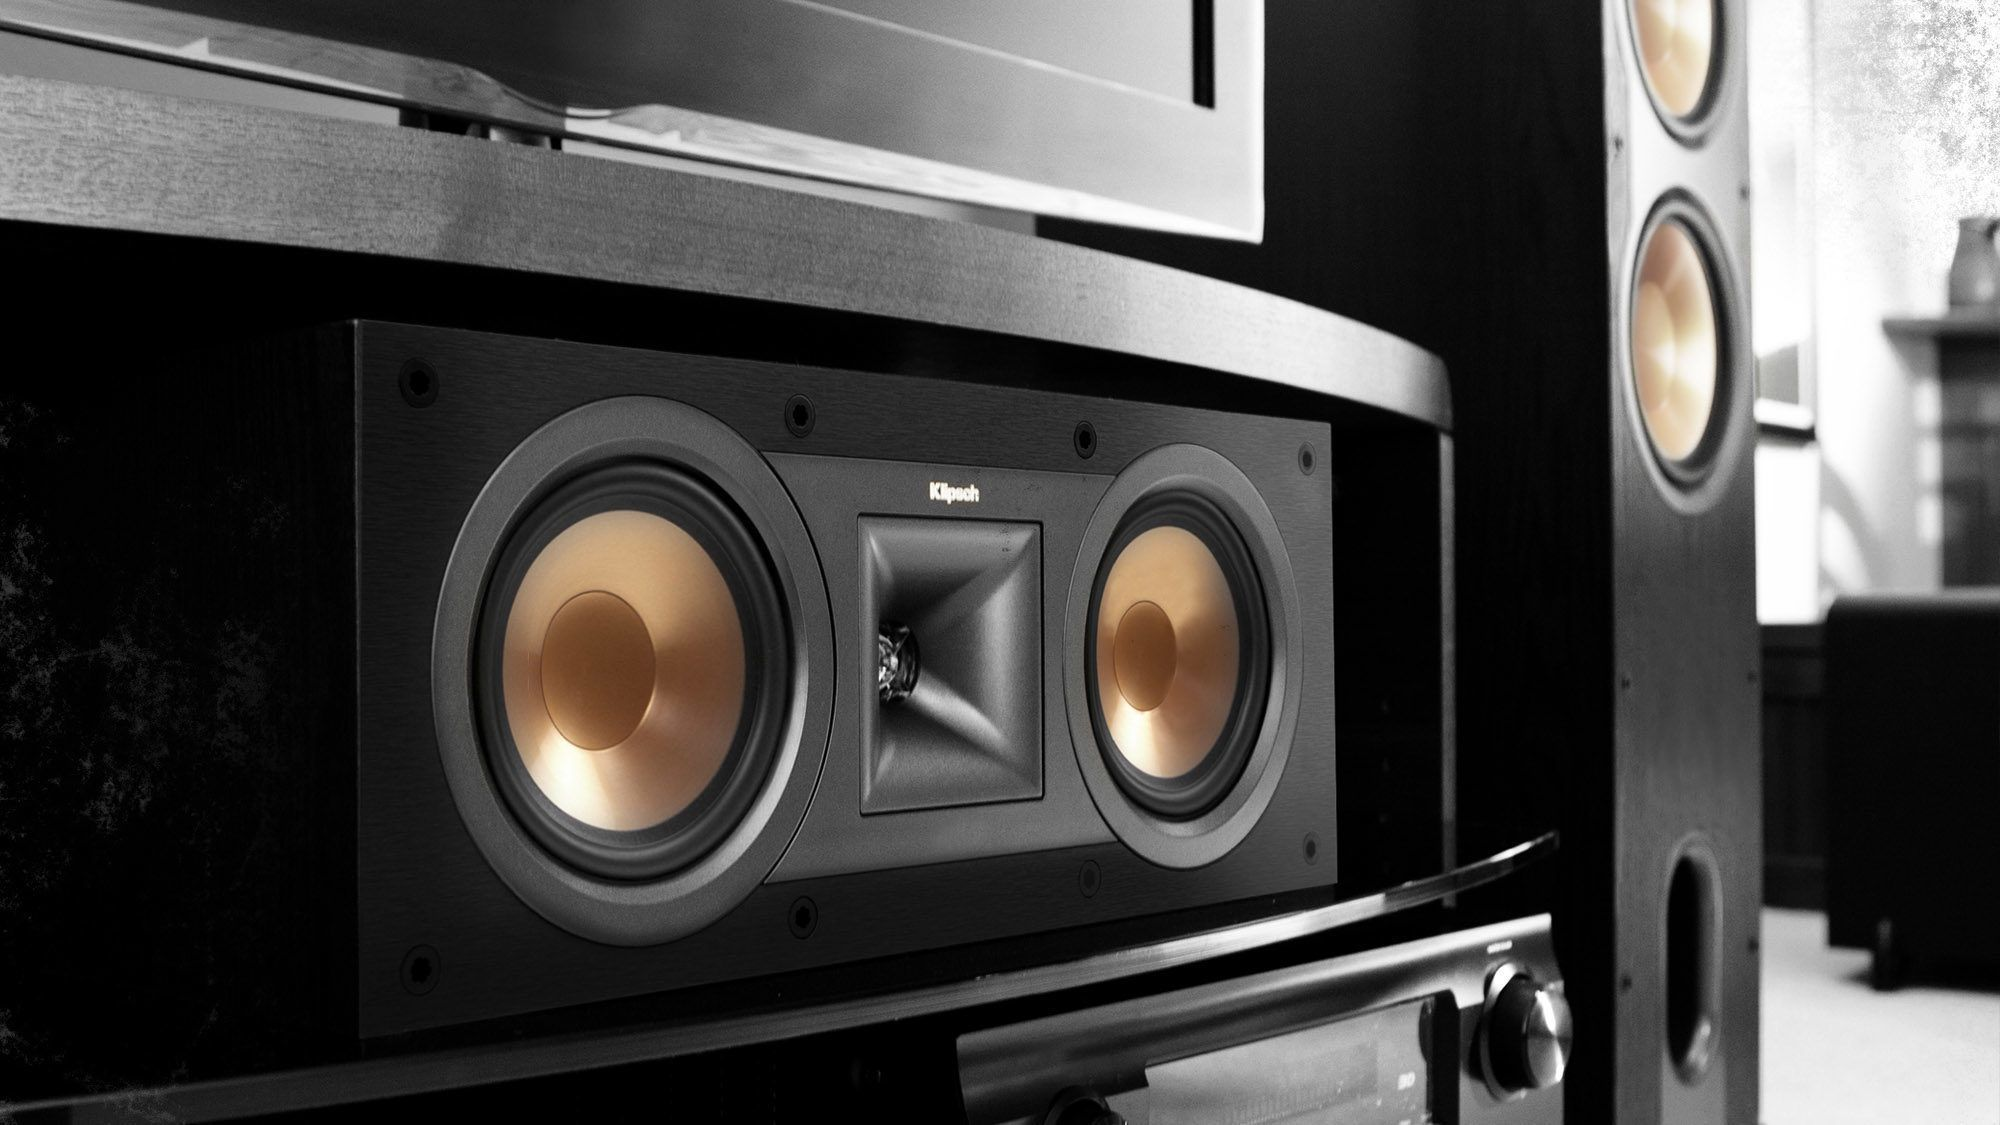 Klipsch home speakers unlike anything you've seen before are down to all-time low prices, today only